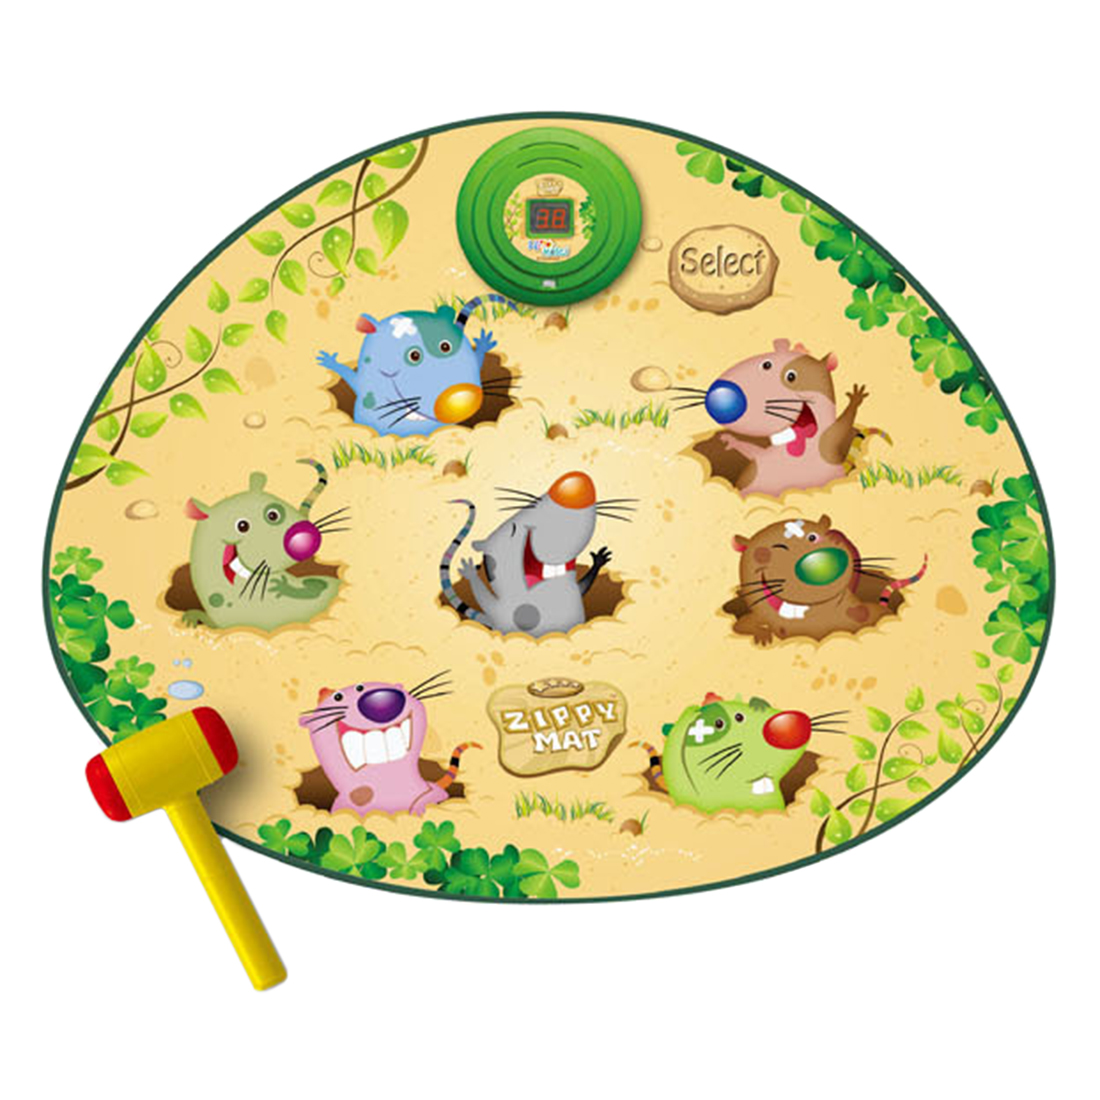 Baby Play Mat Toys Whac-A-Mole Game CP Musical Mat Early Educational Toys For Baby Playing Musical Game Kit 2019